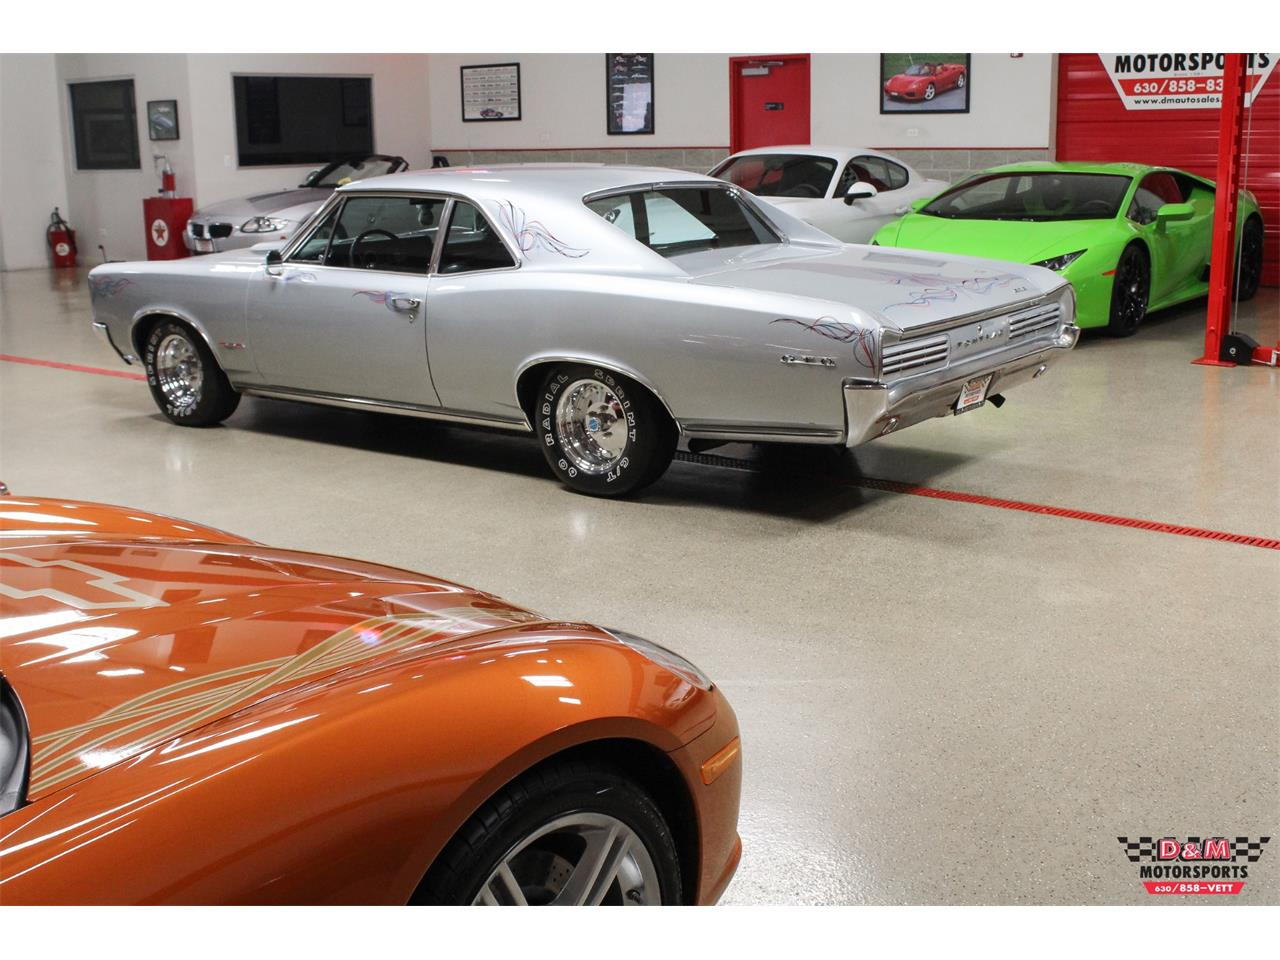 Large Picture of 1966 GTO located in Glen Ellyn Illinois - $39,995.00 Offered by D & M Motorsports - O7FS